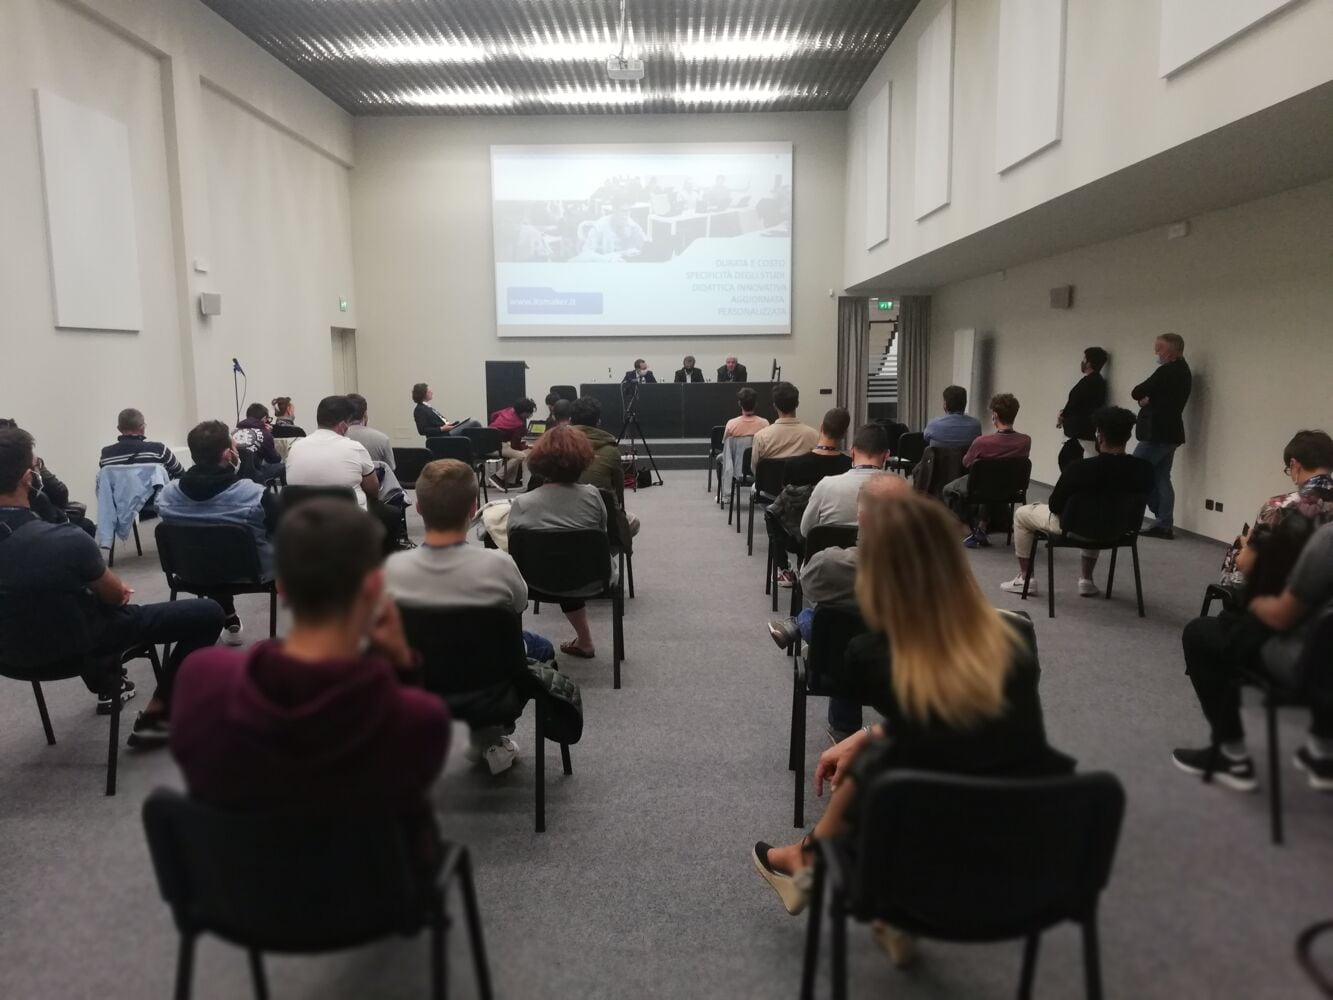 Scm Group ospita l'Open day di Fondazione ITS Maker